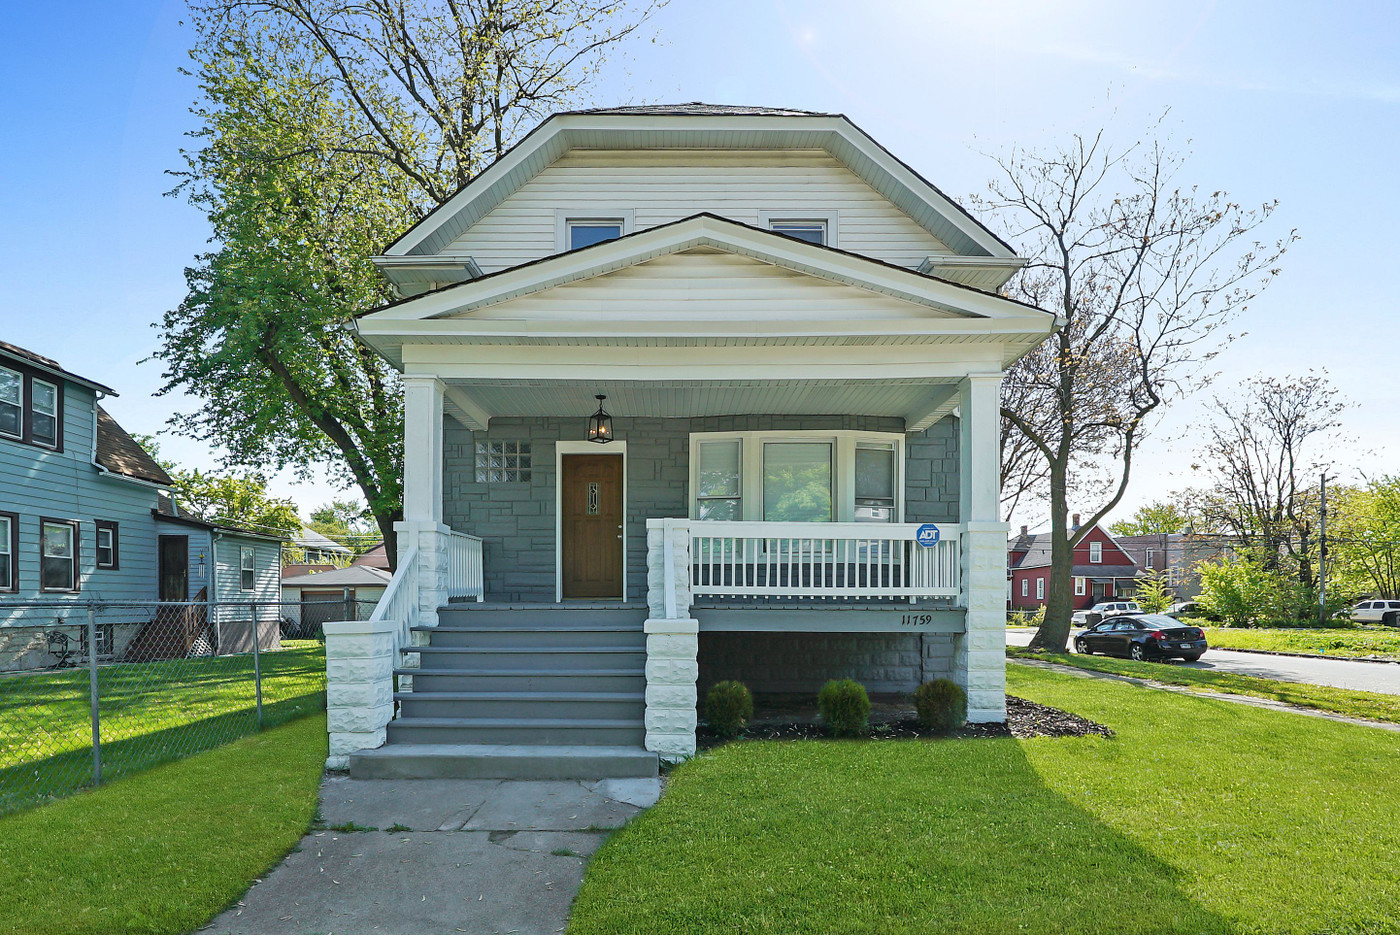 11759 S WALLACE Street, Chicago IL 60628